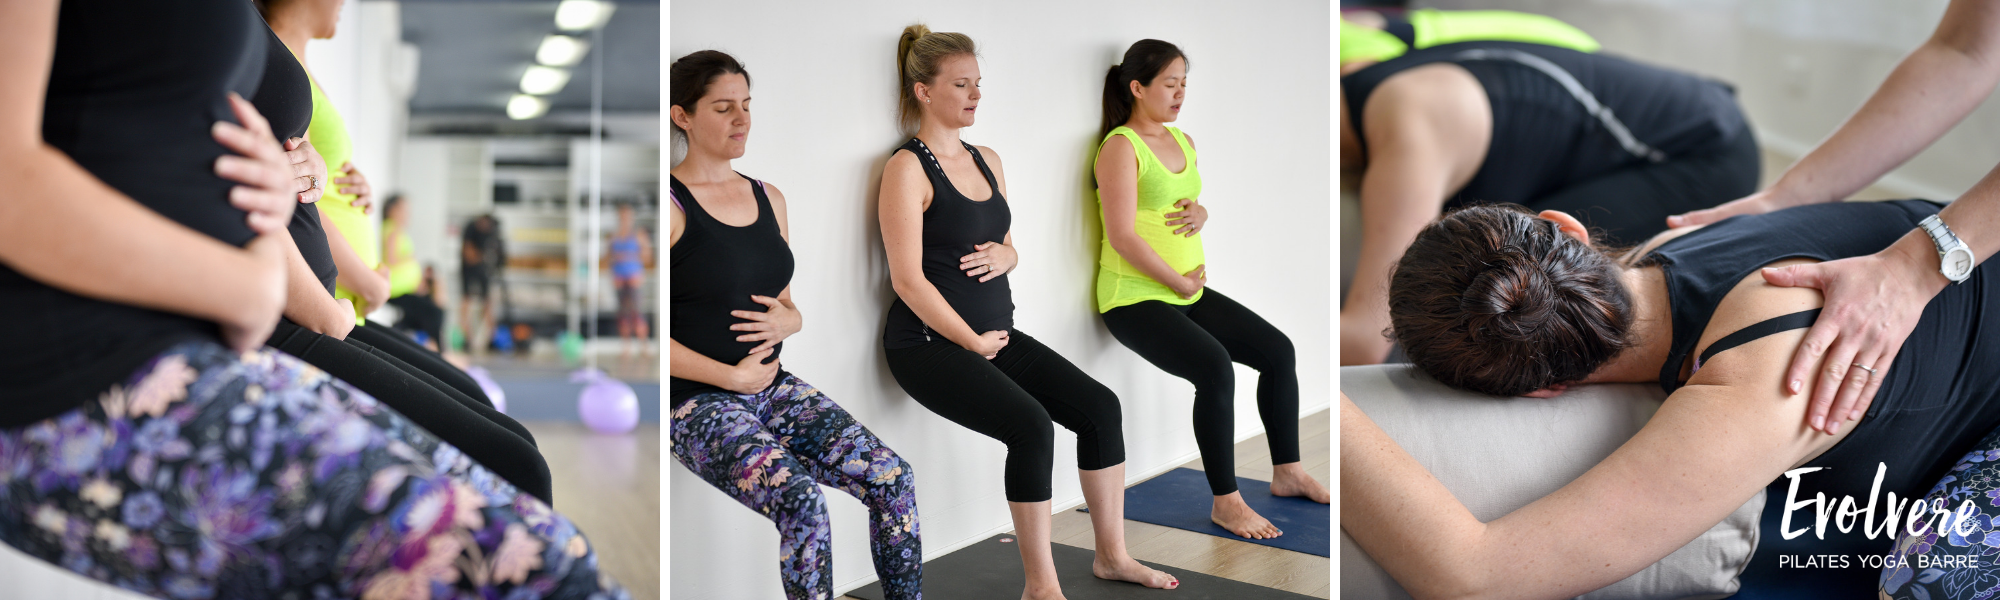 Antenatal classes in Lane Cove